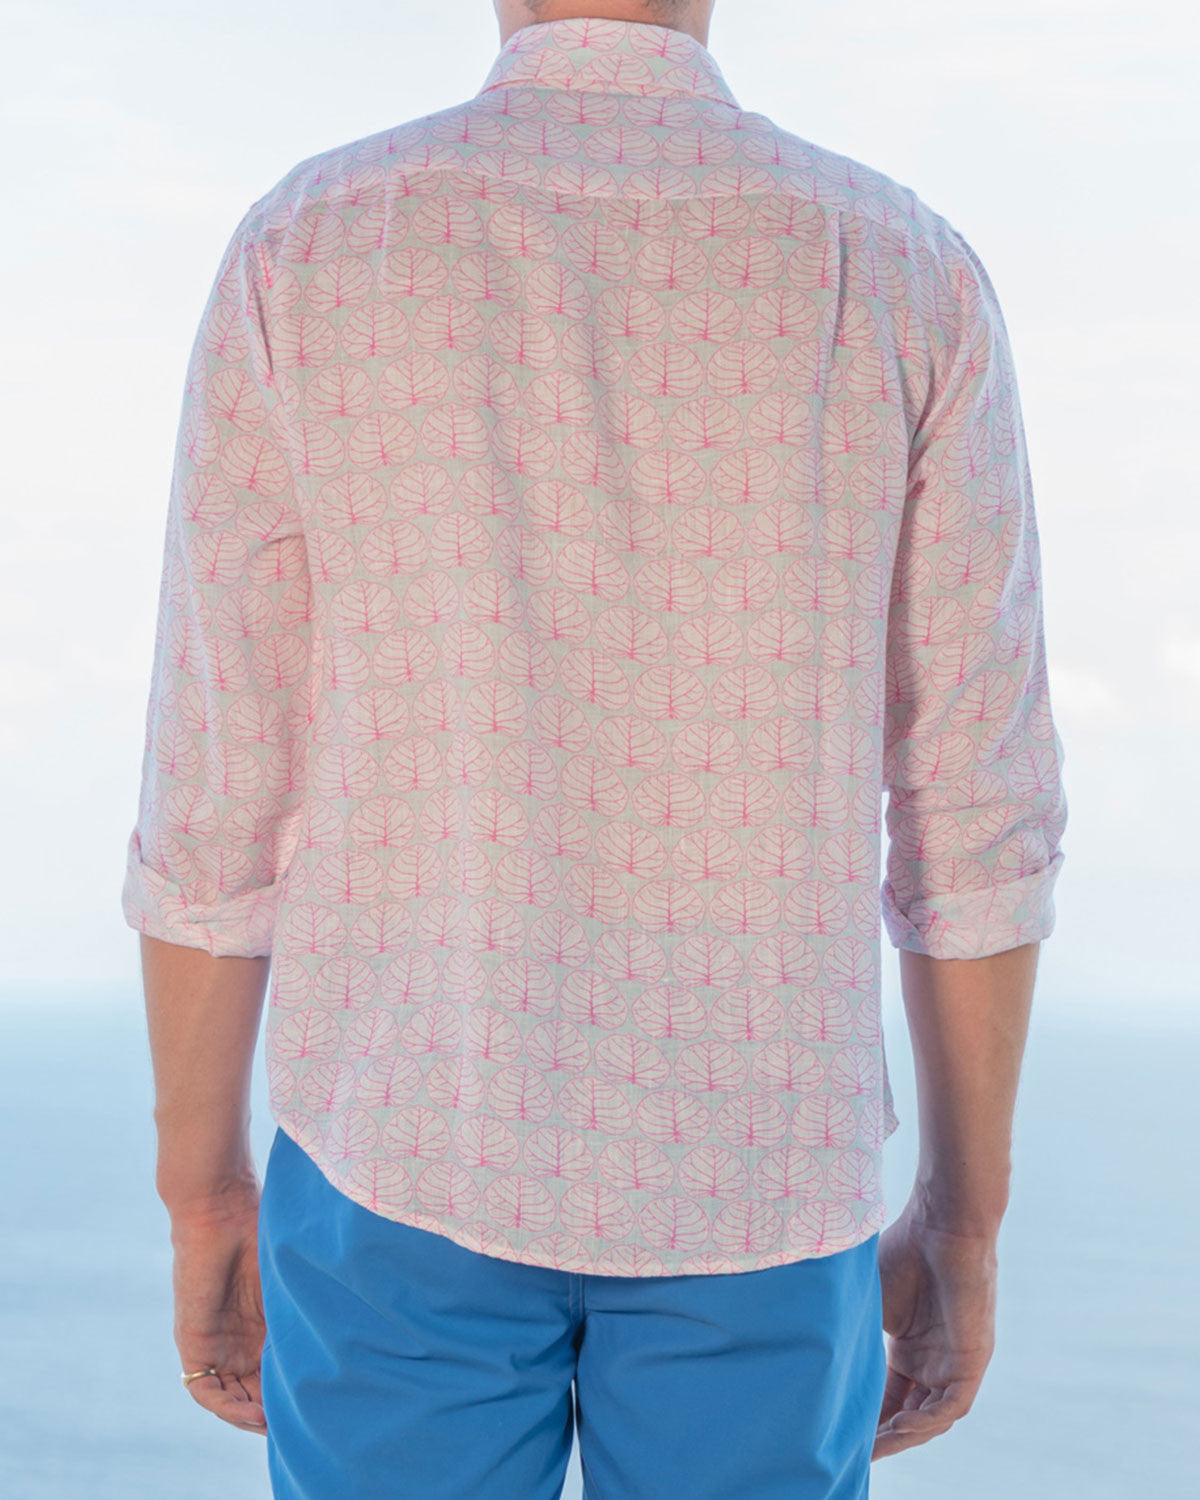 Mens Linen Shirt (Seagrape, Blue/Pink) Back